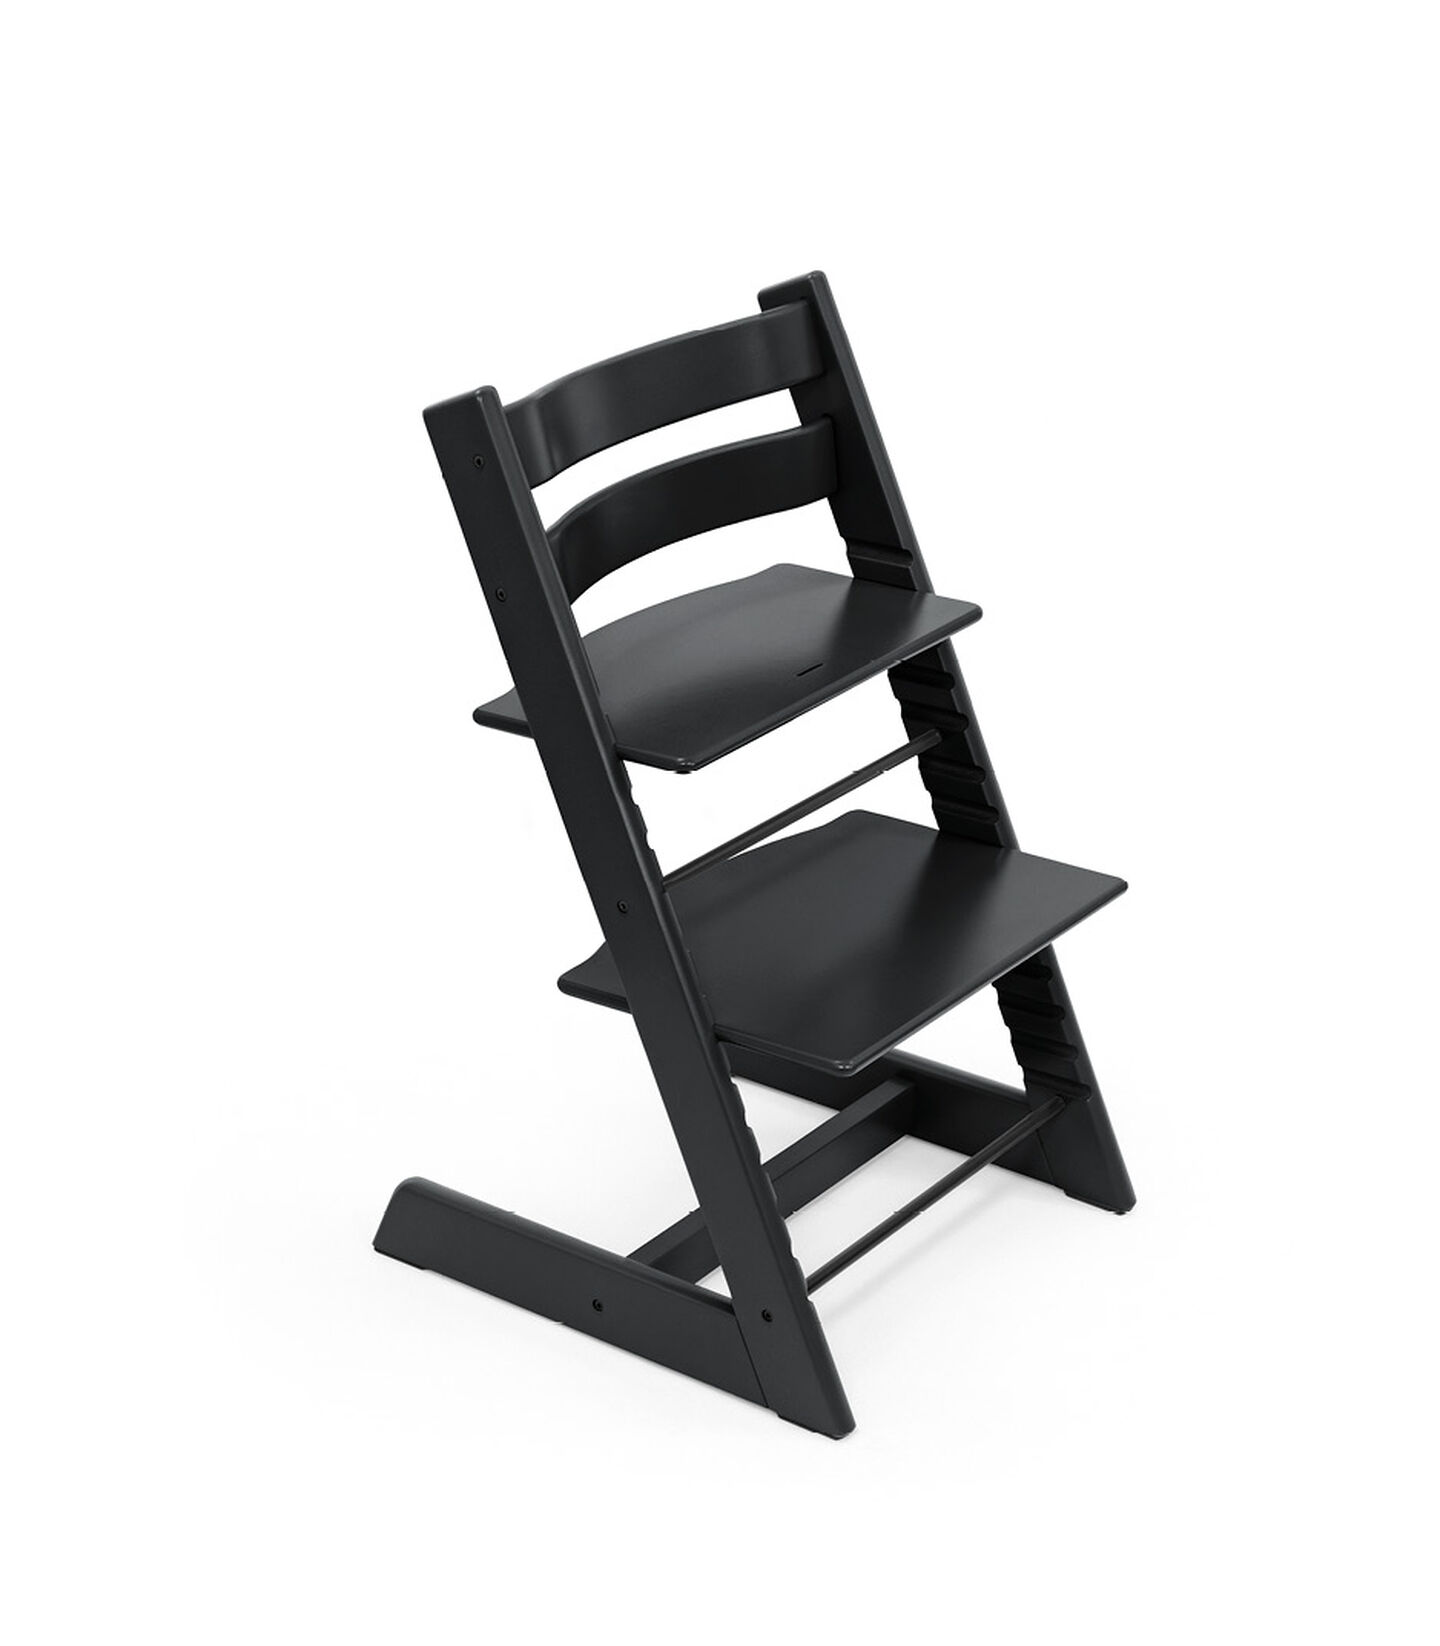 Tripp Trapp® chair Black, Beech Wood. view 2